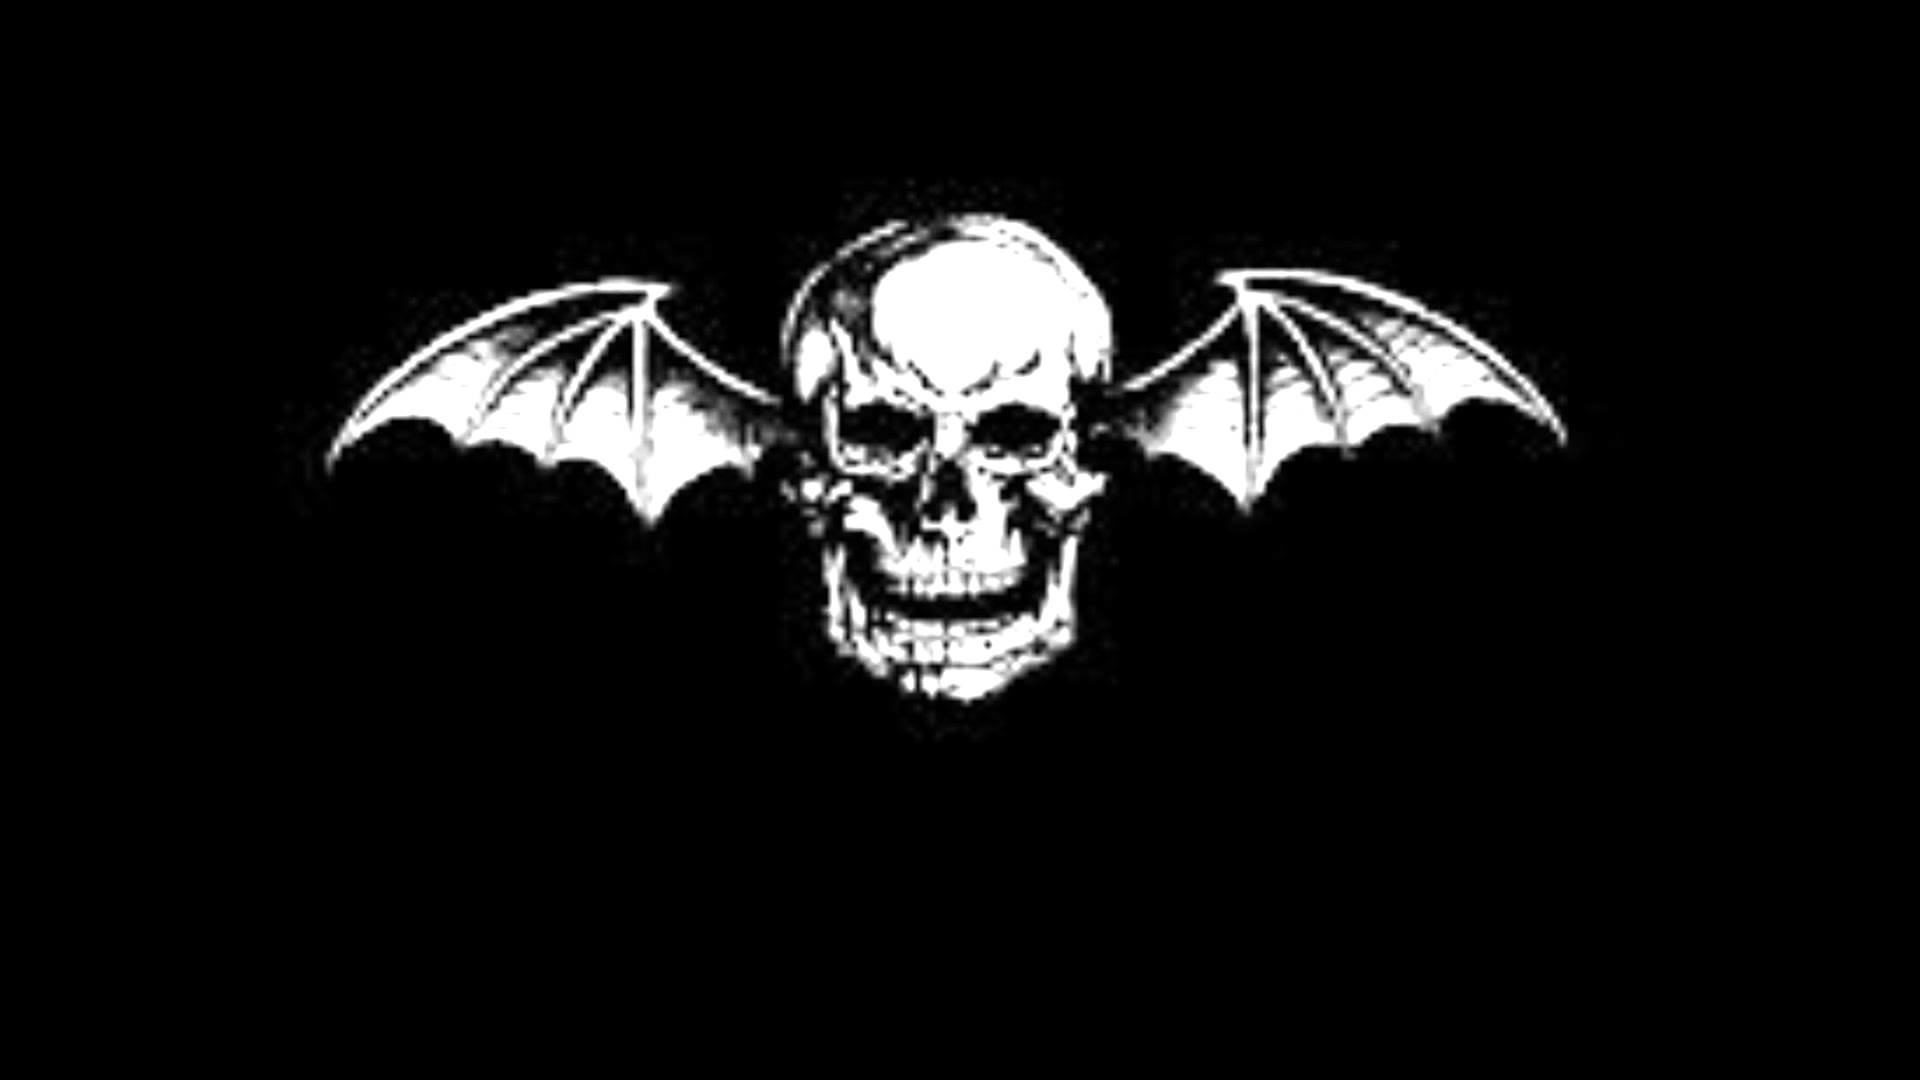 Avenged Sevenfold Deathbat Wallpaper By Chaotichazard On Pictures